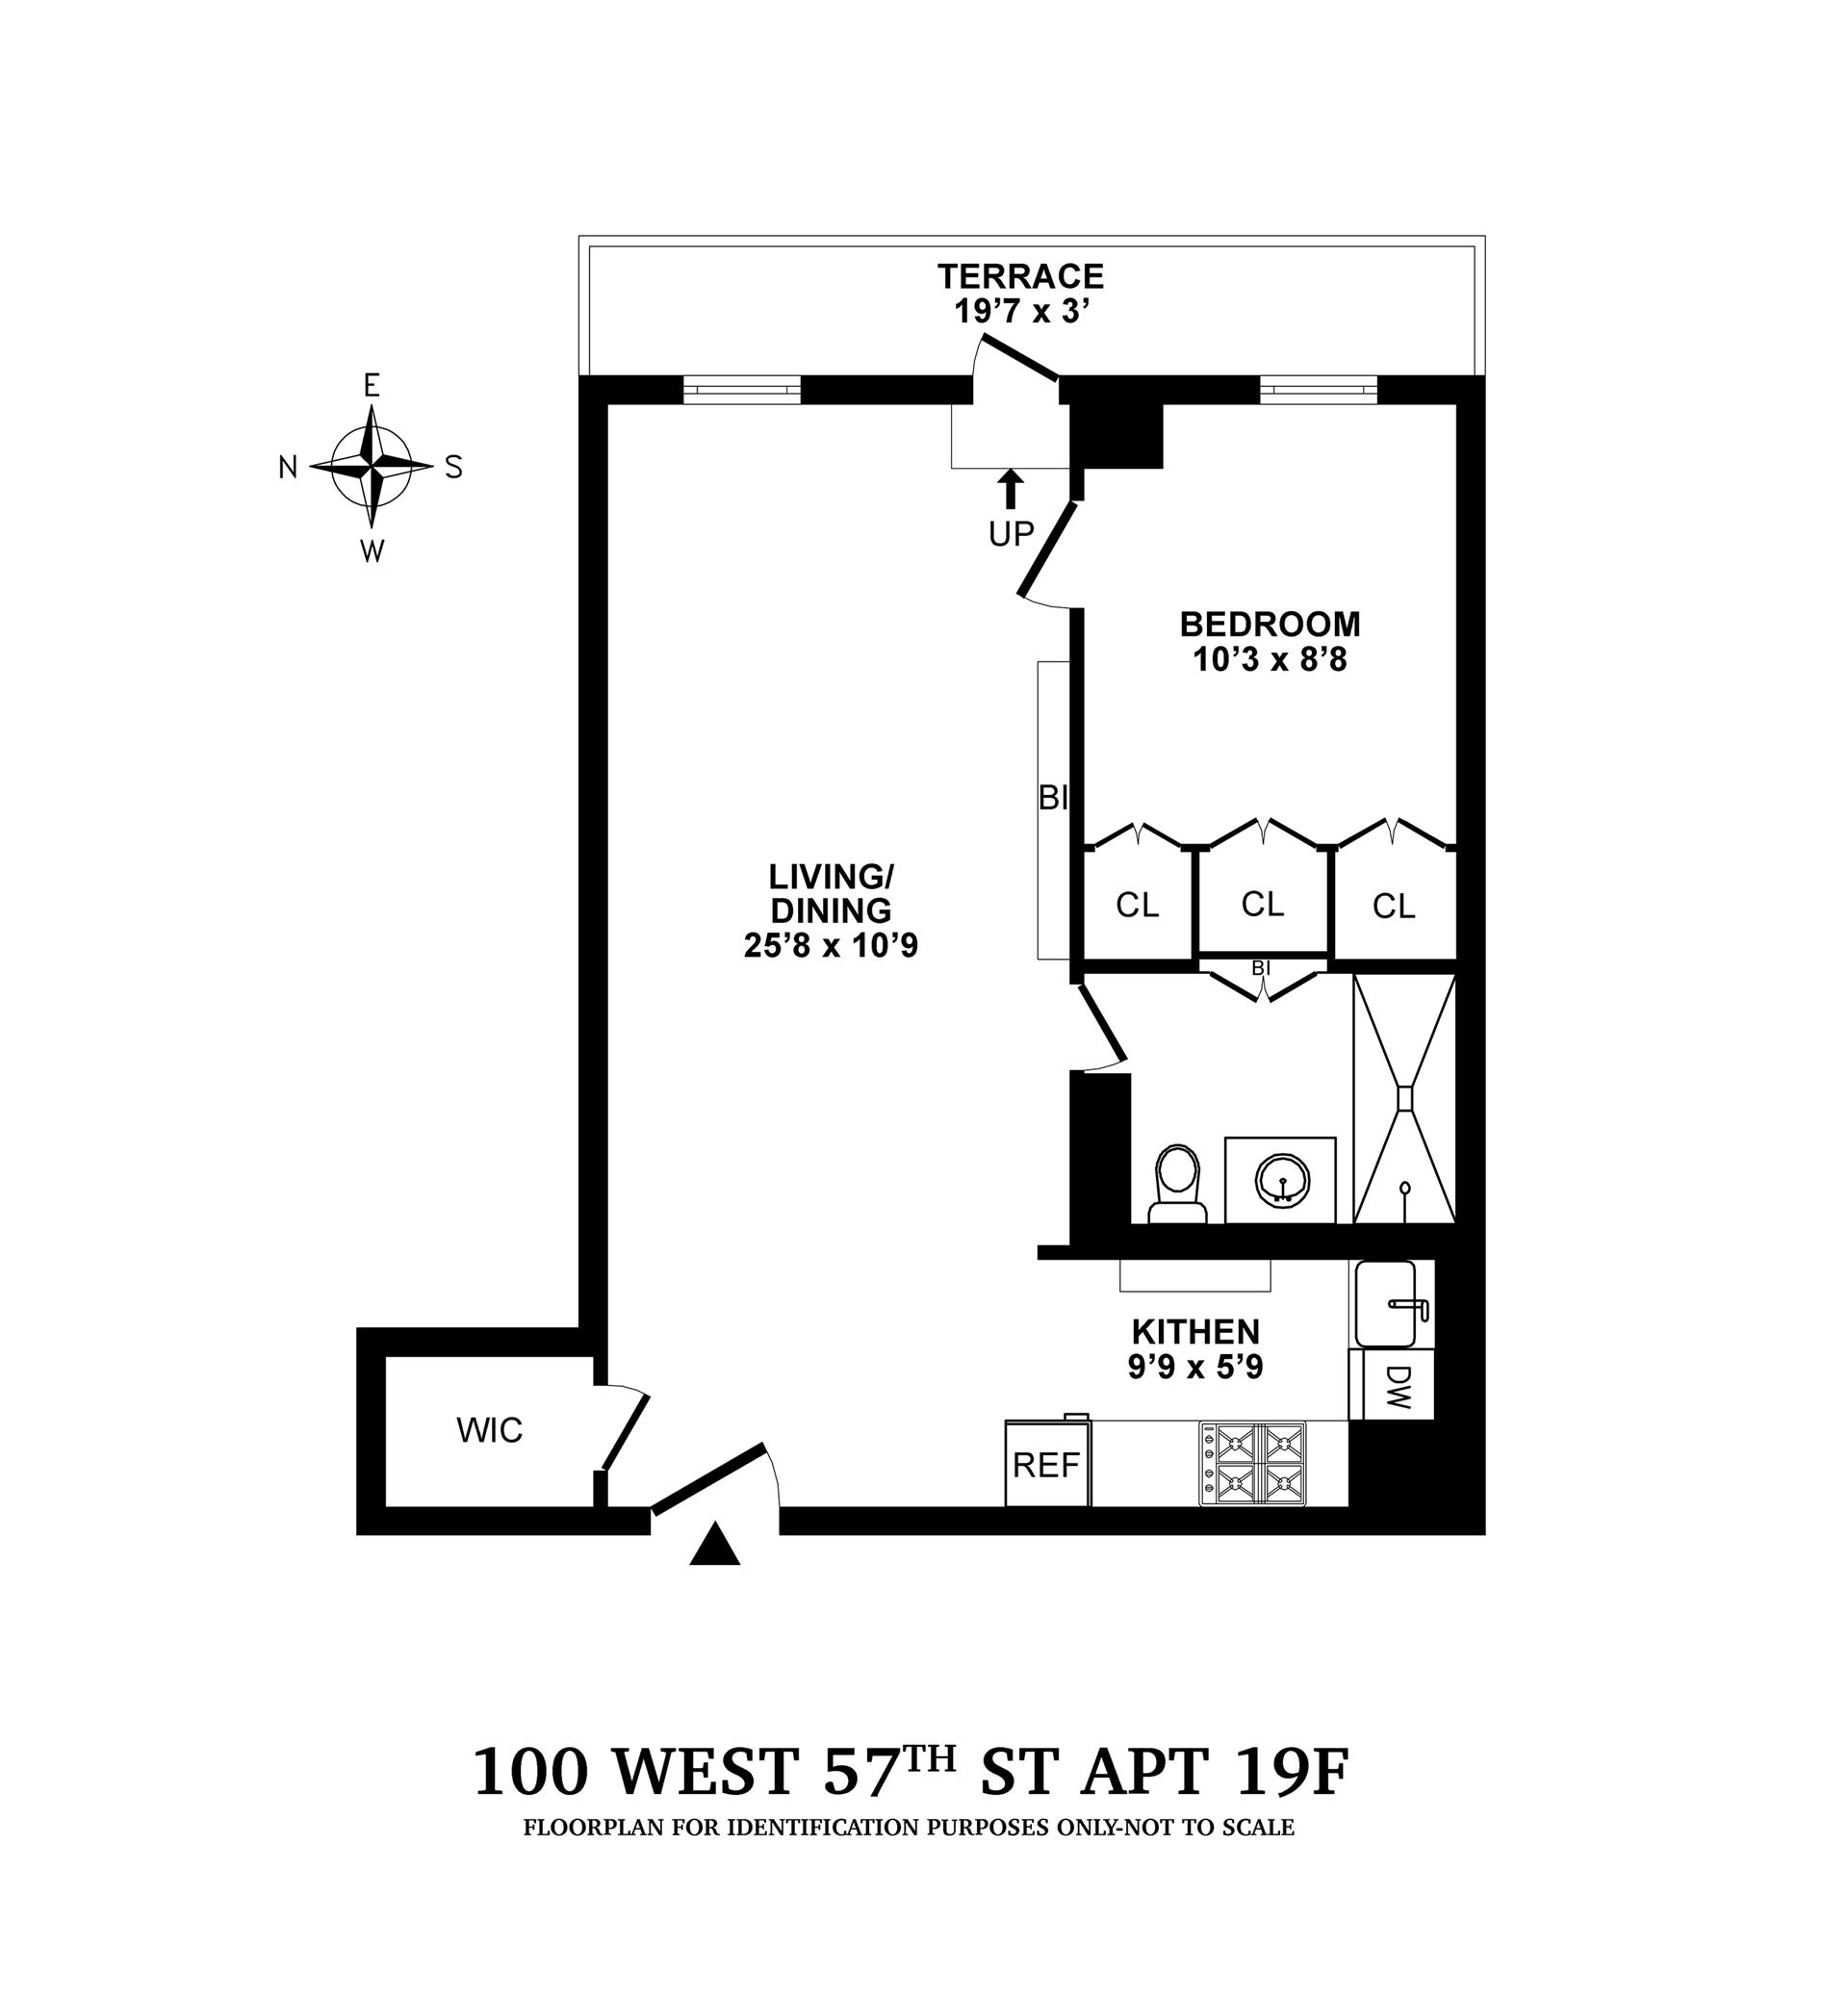 Floor plan of CARNEGIE HOUSE, 100 West 57th St, 19F - Midtown, New York